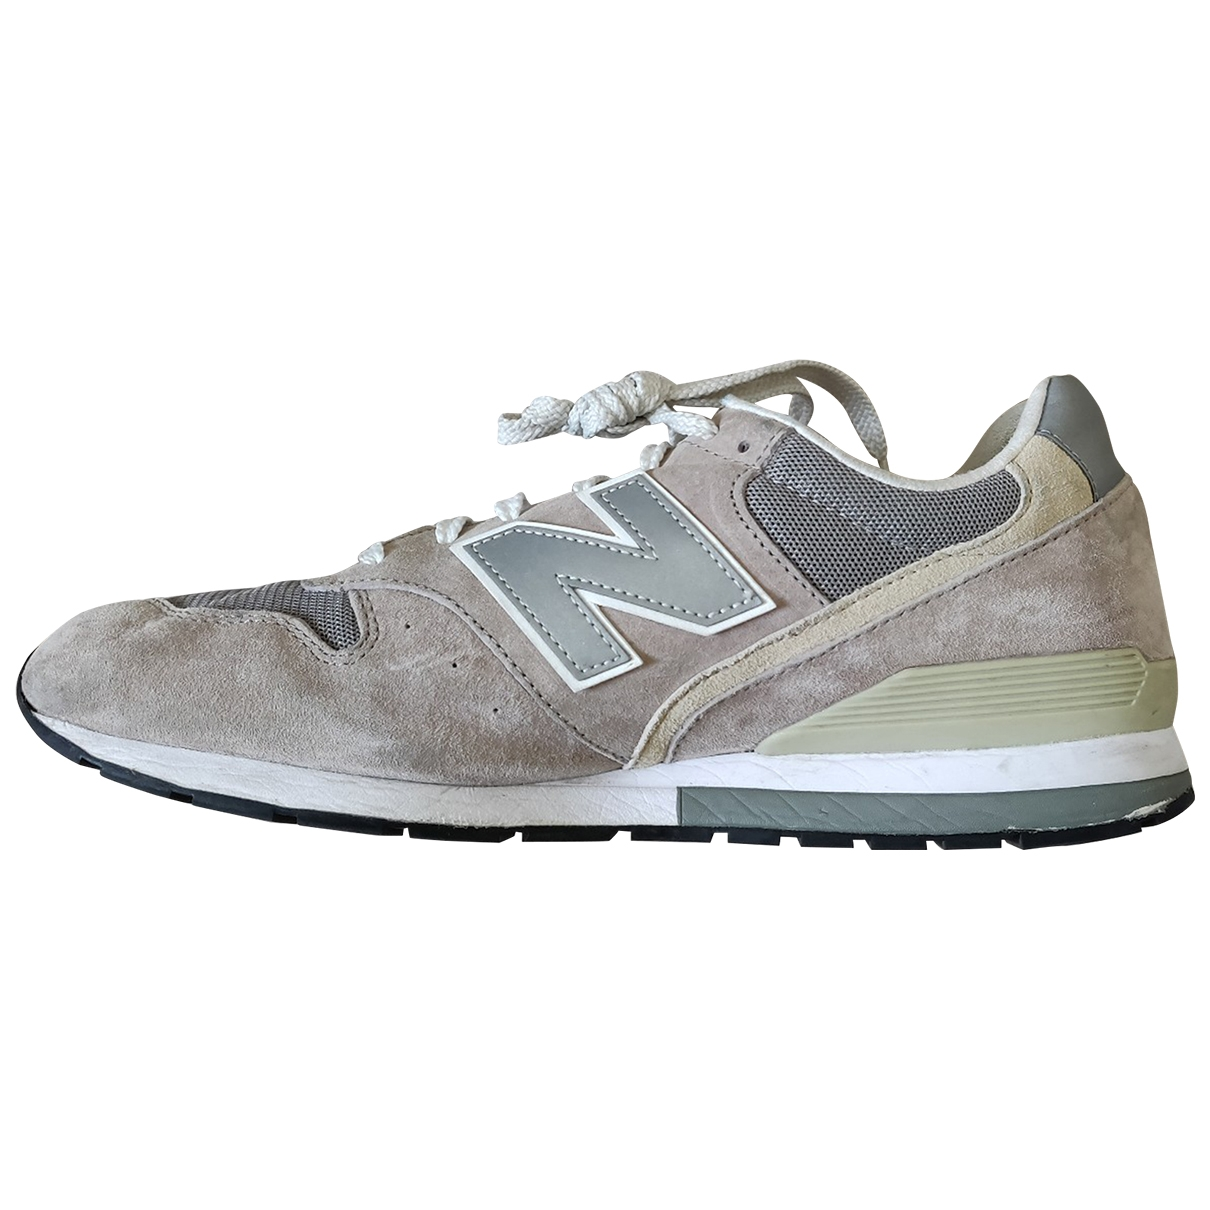 New Balance \N Beige Suede Trainers for Men 46.5 EU